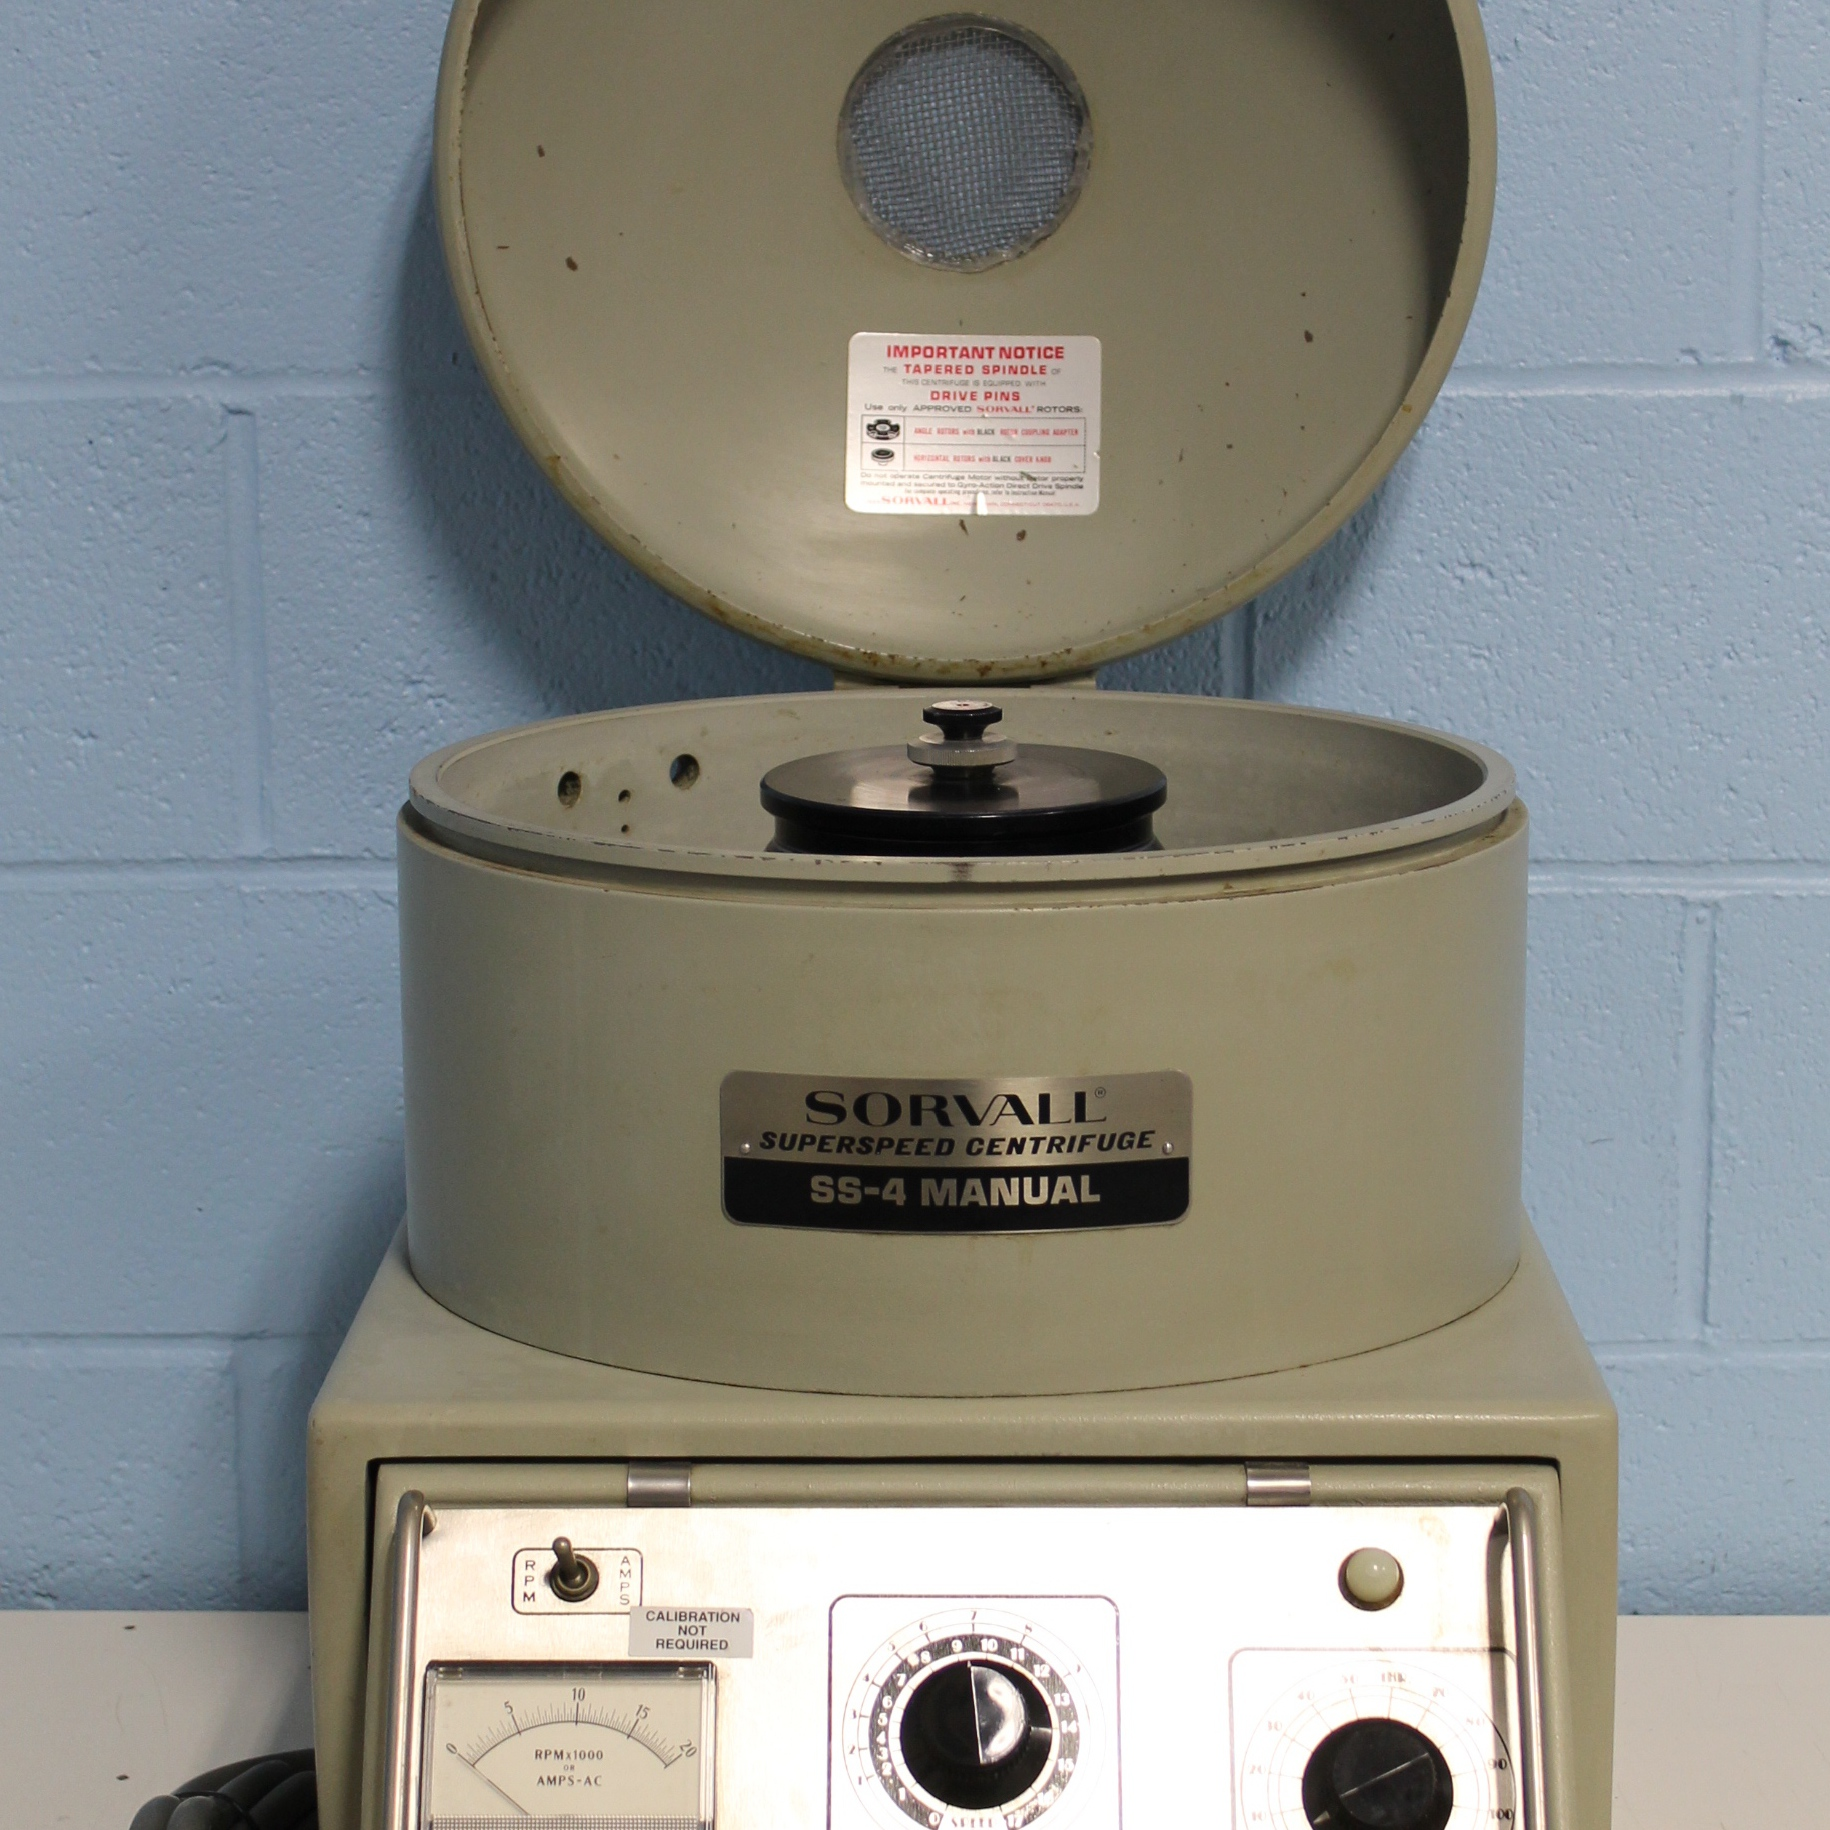 Sorvall Superspeed Centrifuge Model SS-4 Manual Image